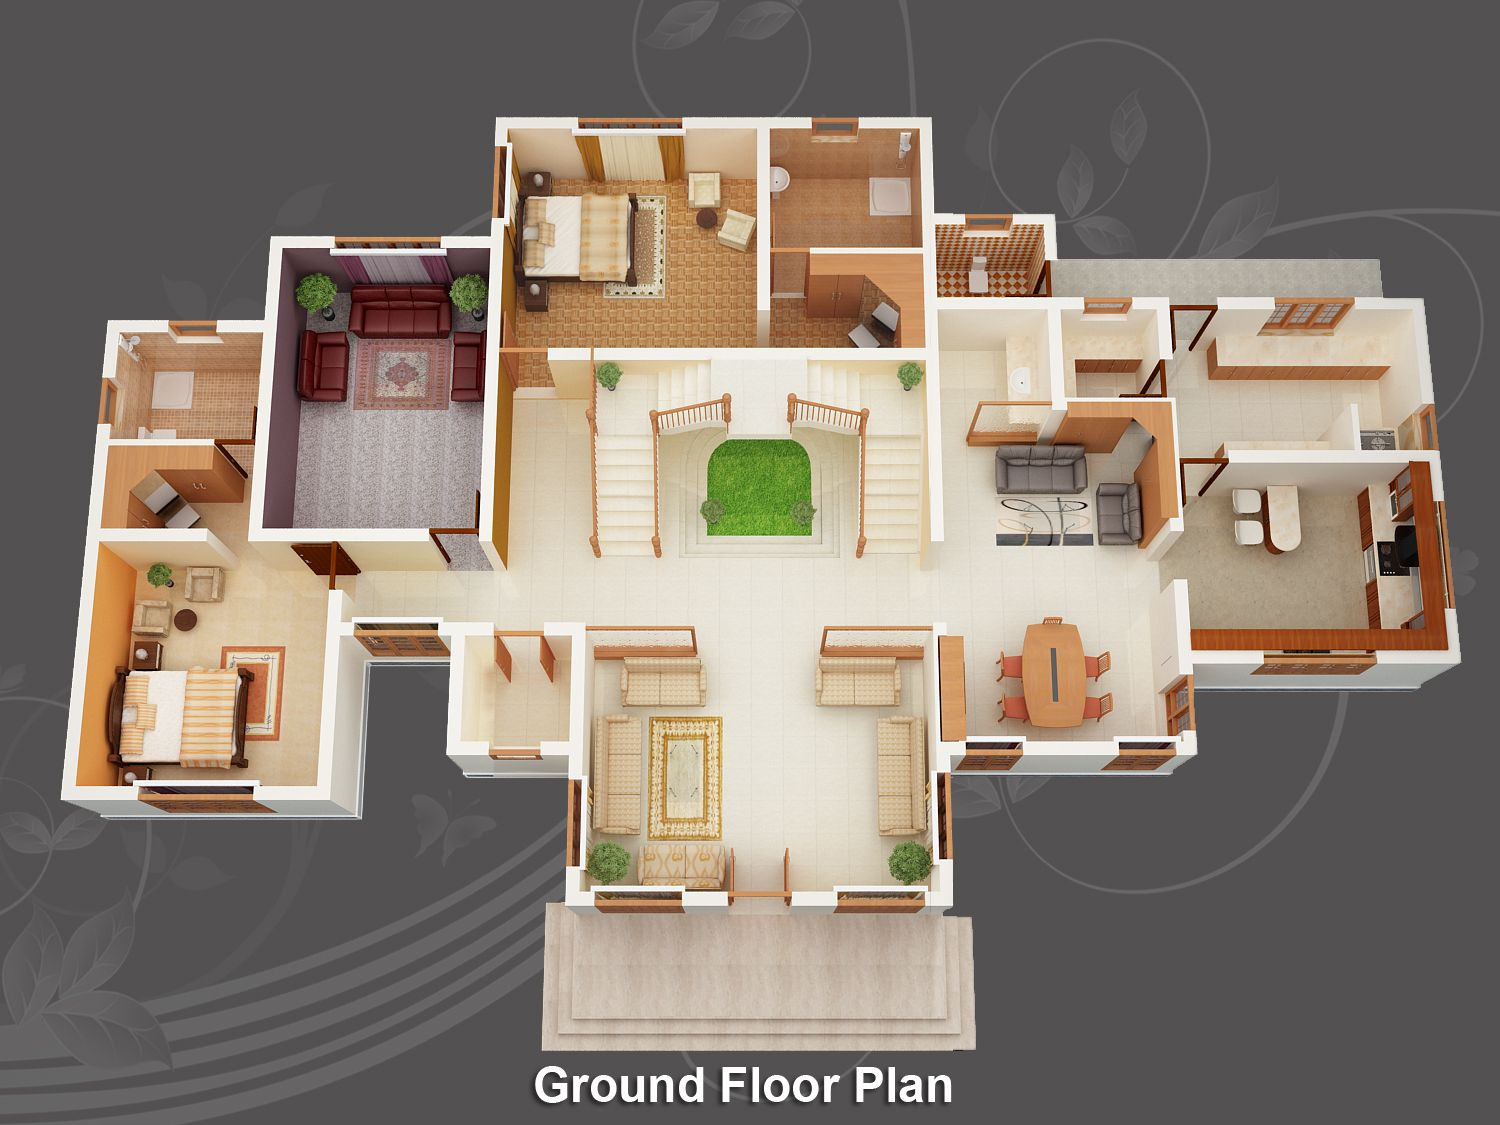 Image for free home design plans 3d wallpaper desktop